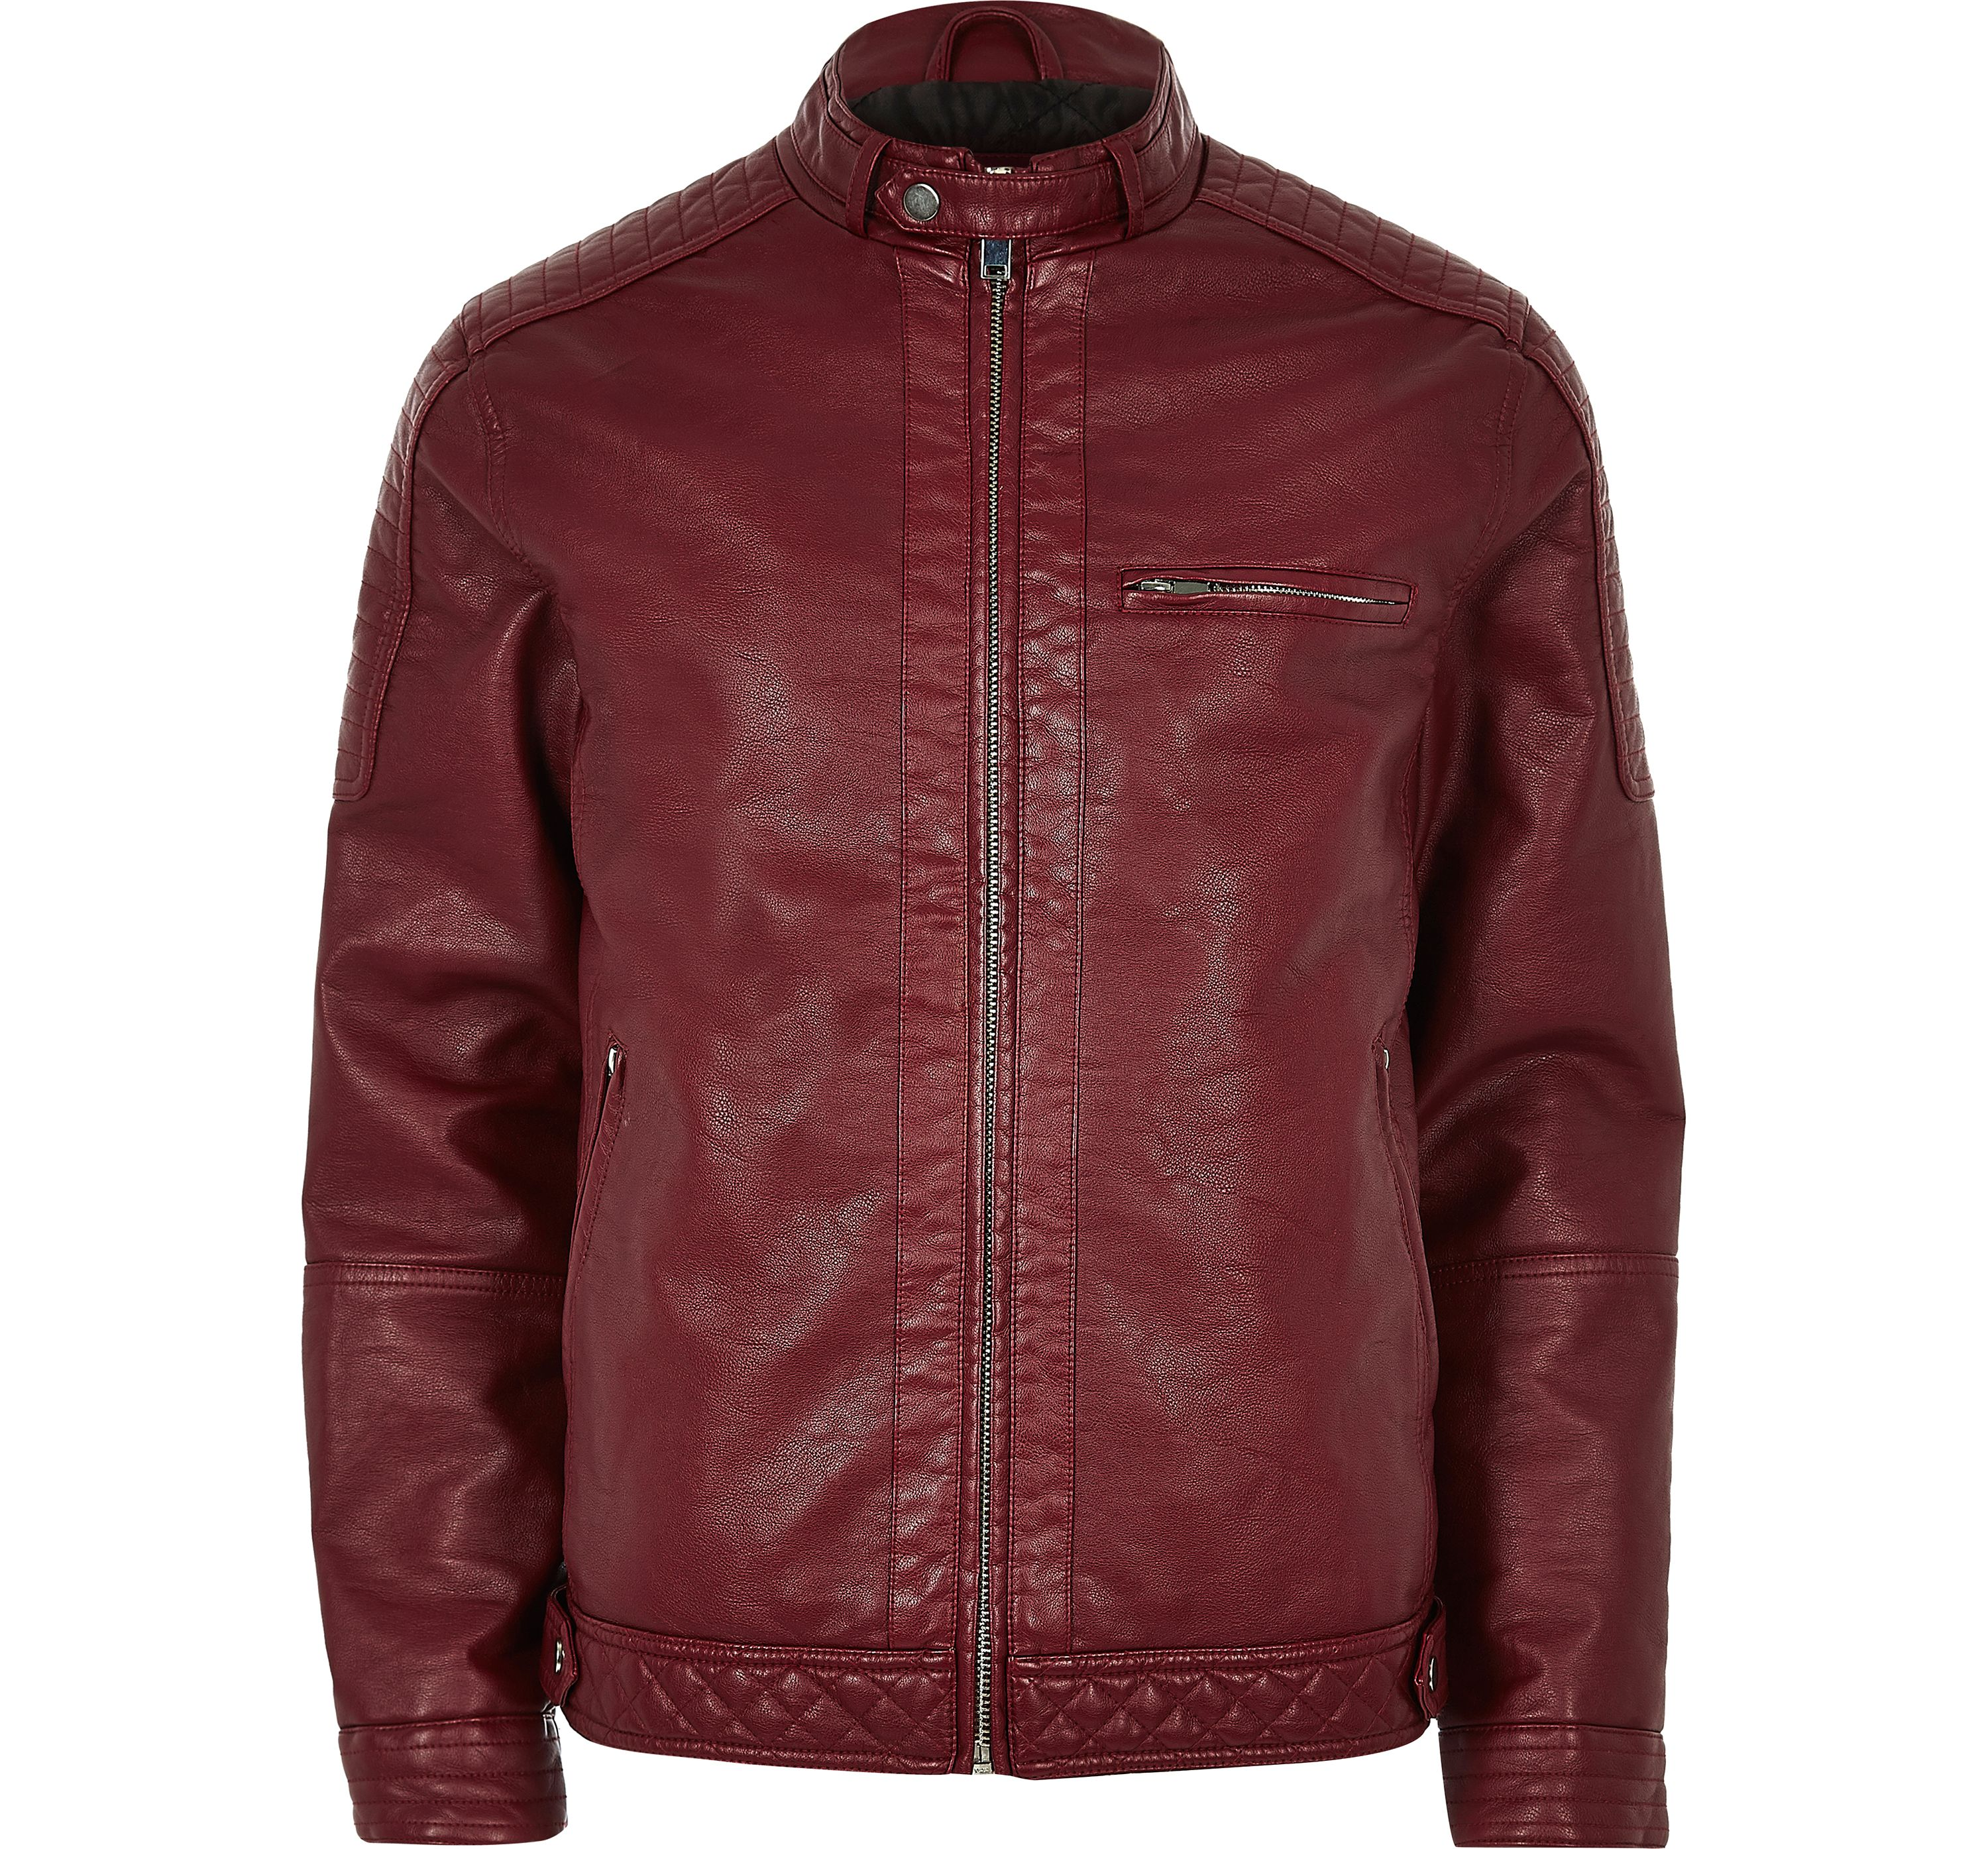 679e38b7a94f3 Mens Red faux leather racer jacket by Riv... — Thread